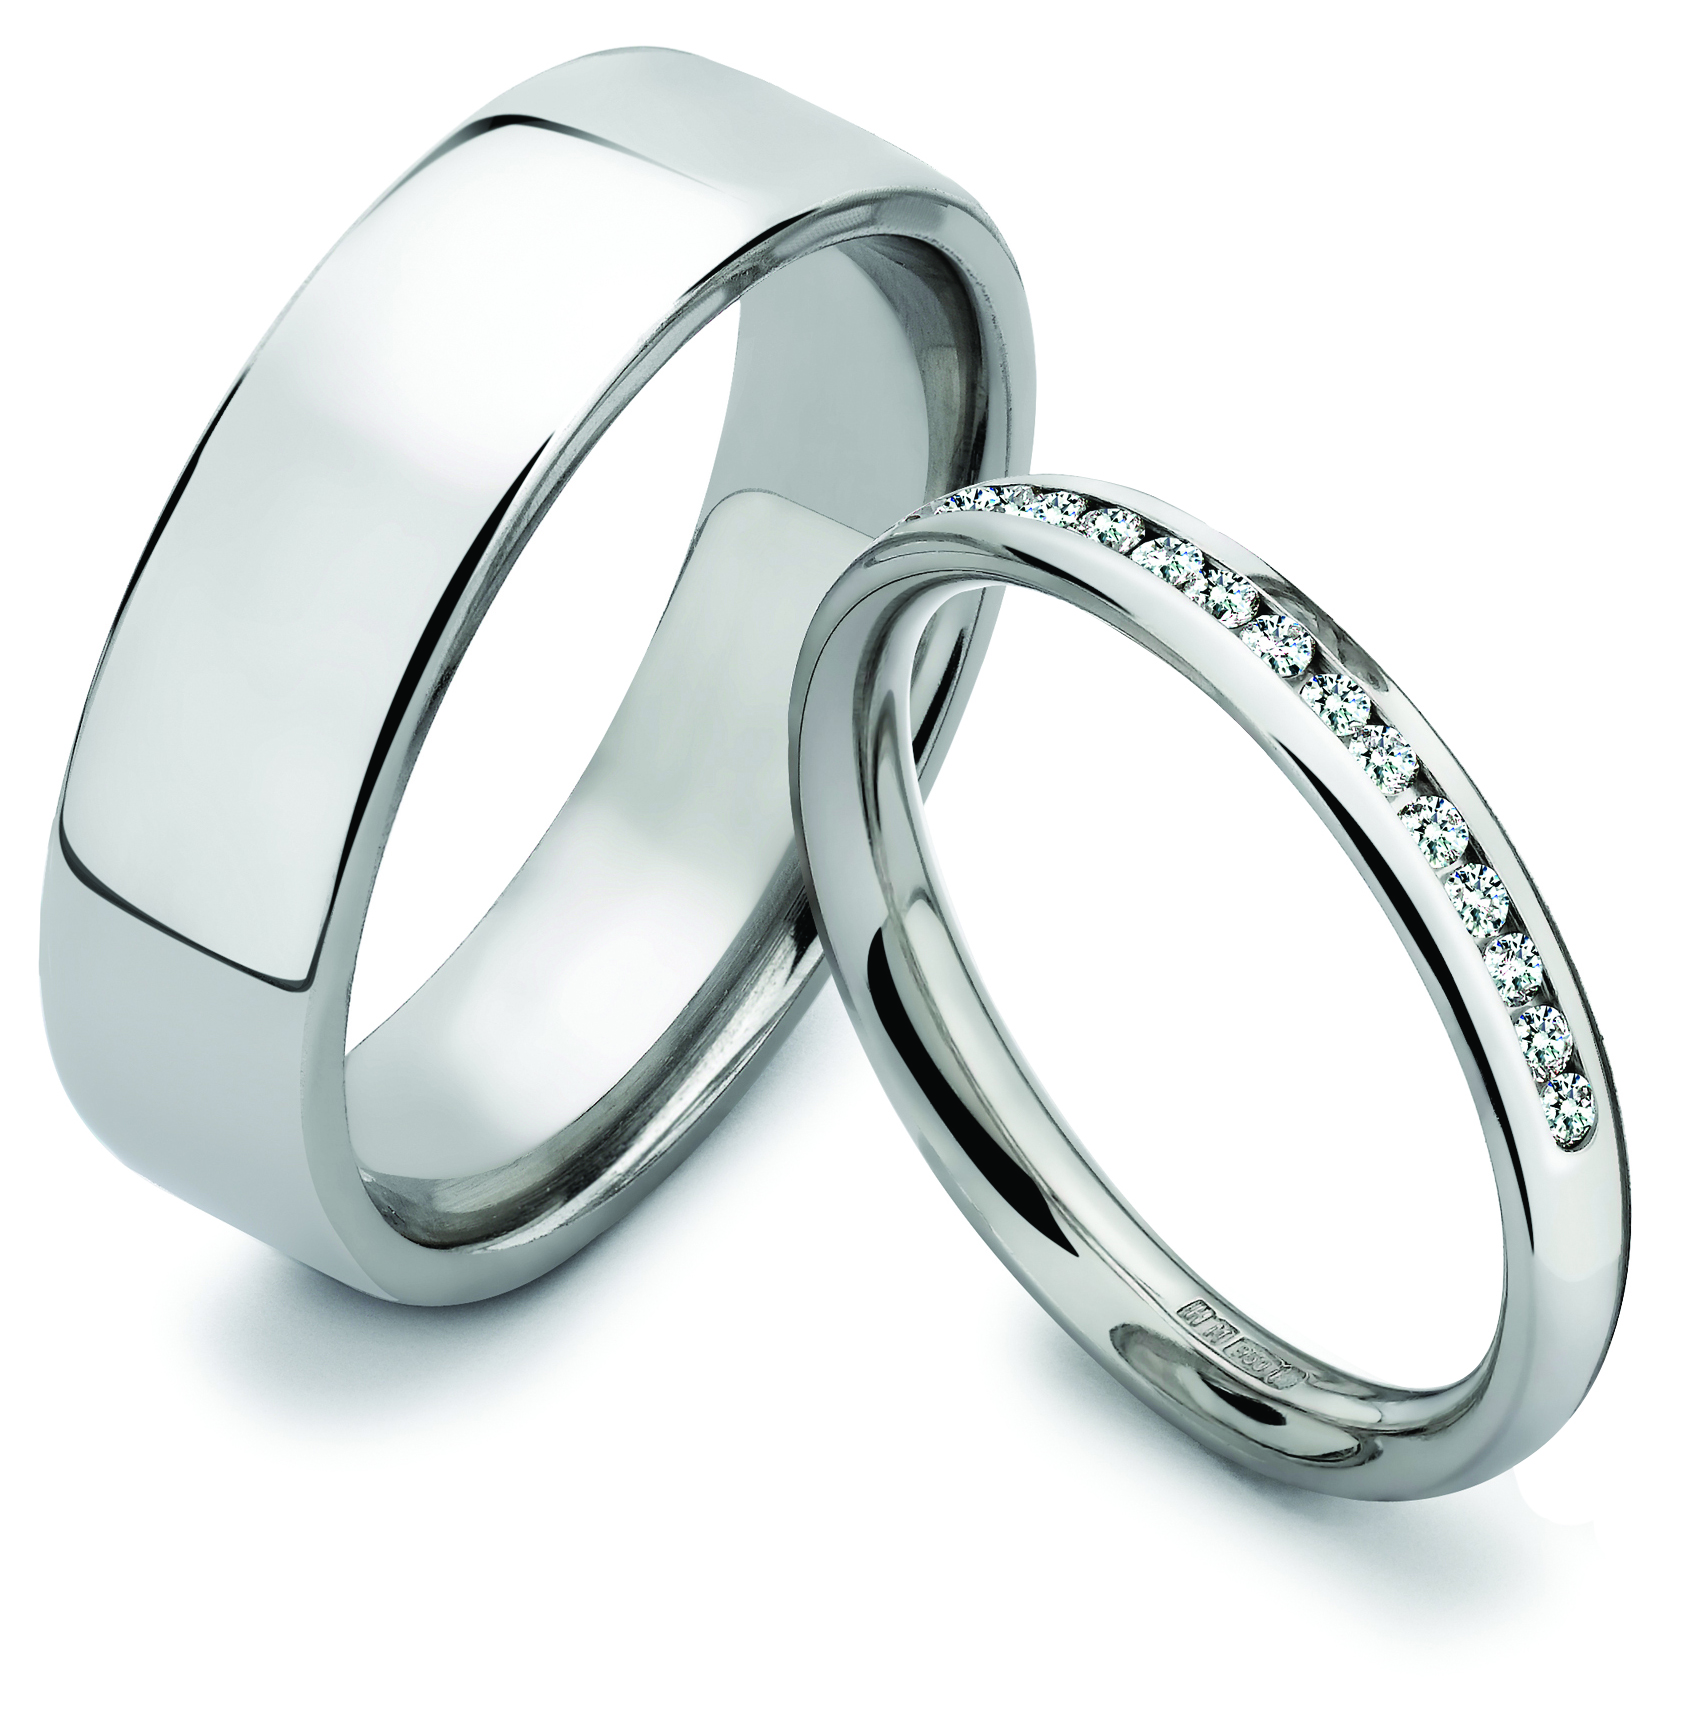 picture of wedding rings pictures of wedding rings Vintage Platinum Wedding Rings Are Beautiful Indeed These Rings